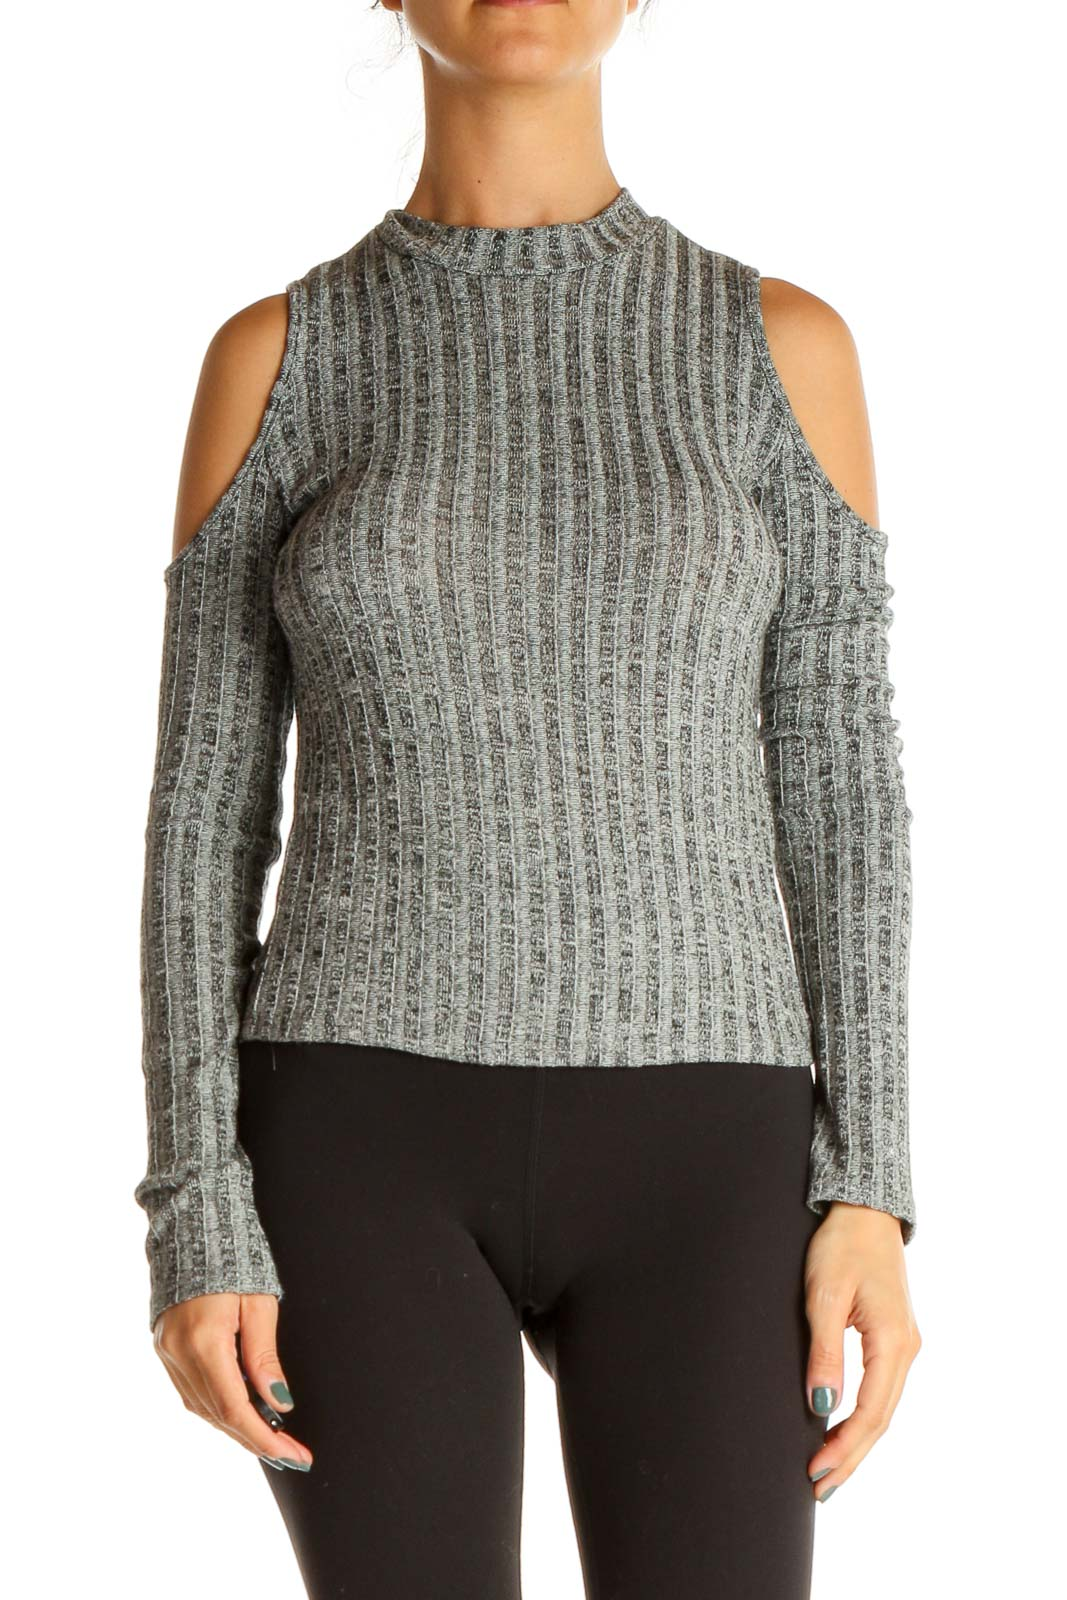 Gray Textured Casual Top Front